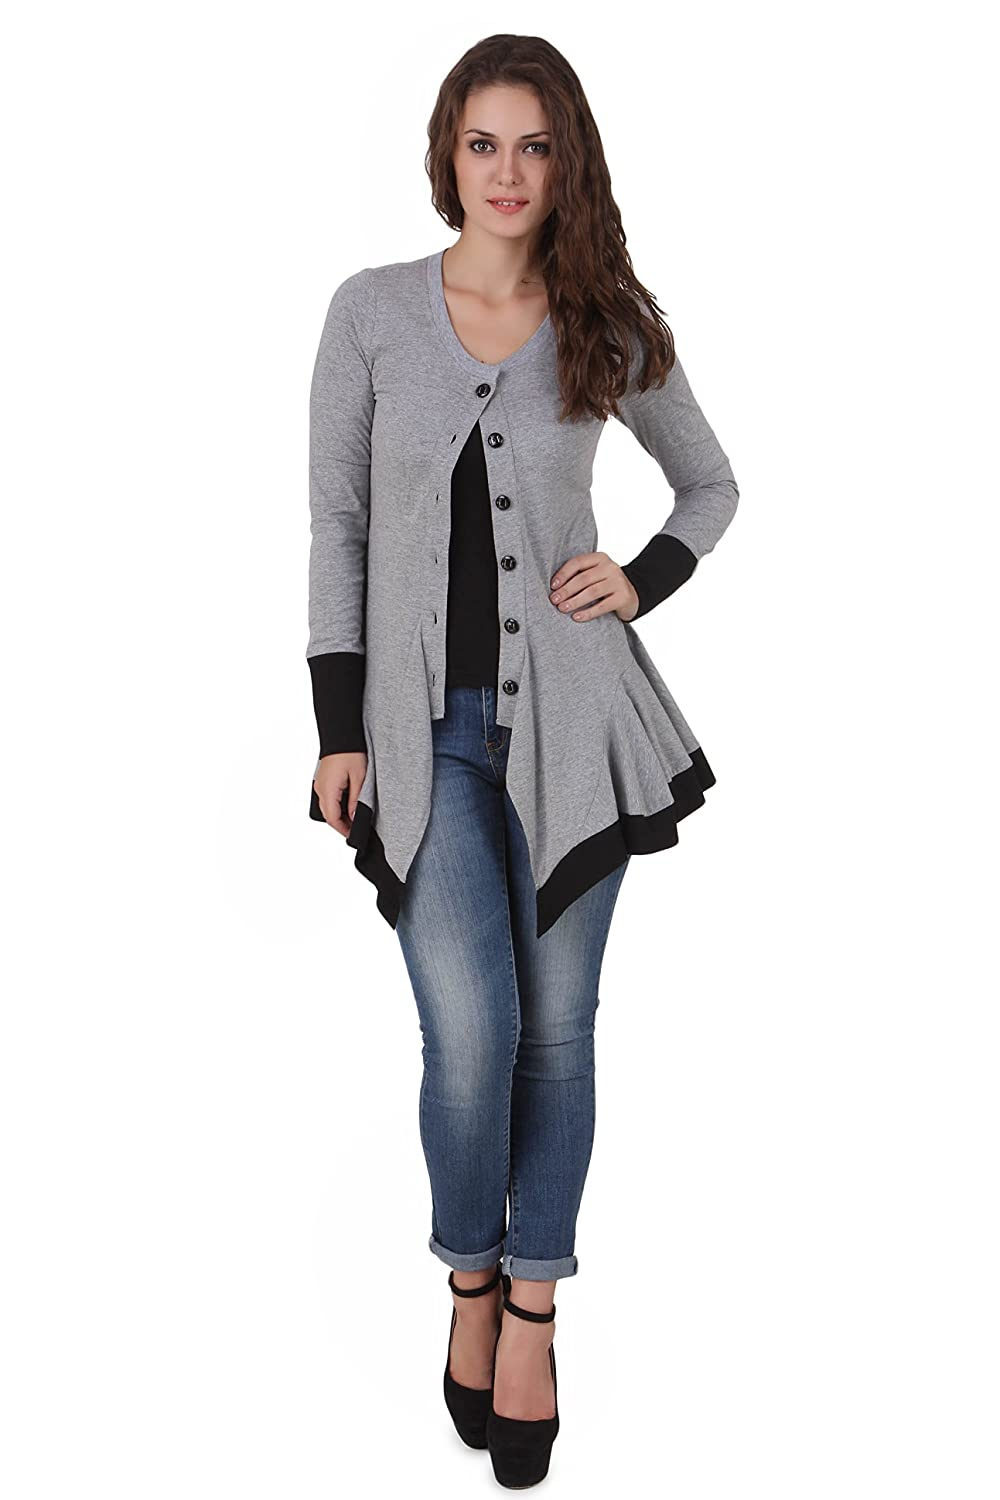 Winter Wear Store!! Upto 70% off On Top Brands By Amazon | TEXCO SUMMER/WINTER ROUNDED NECK SHRUG @ Rs.799